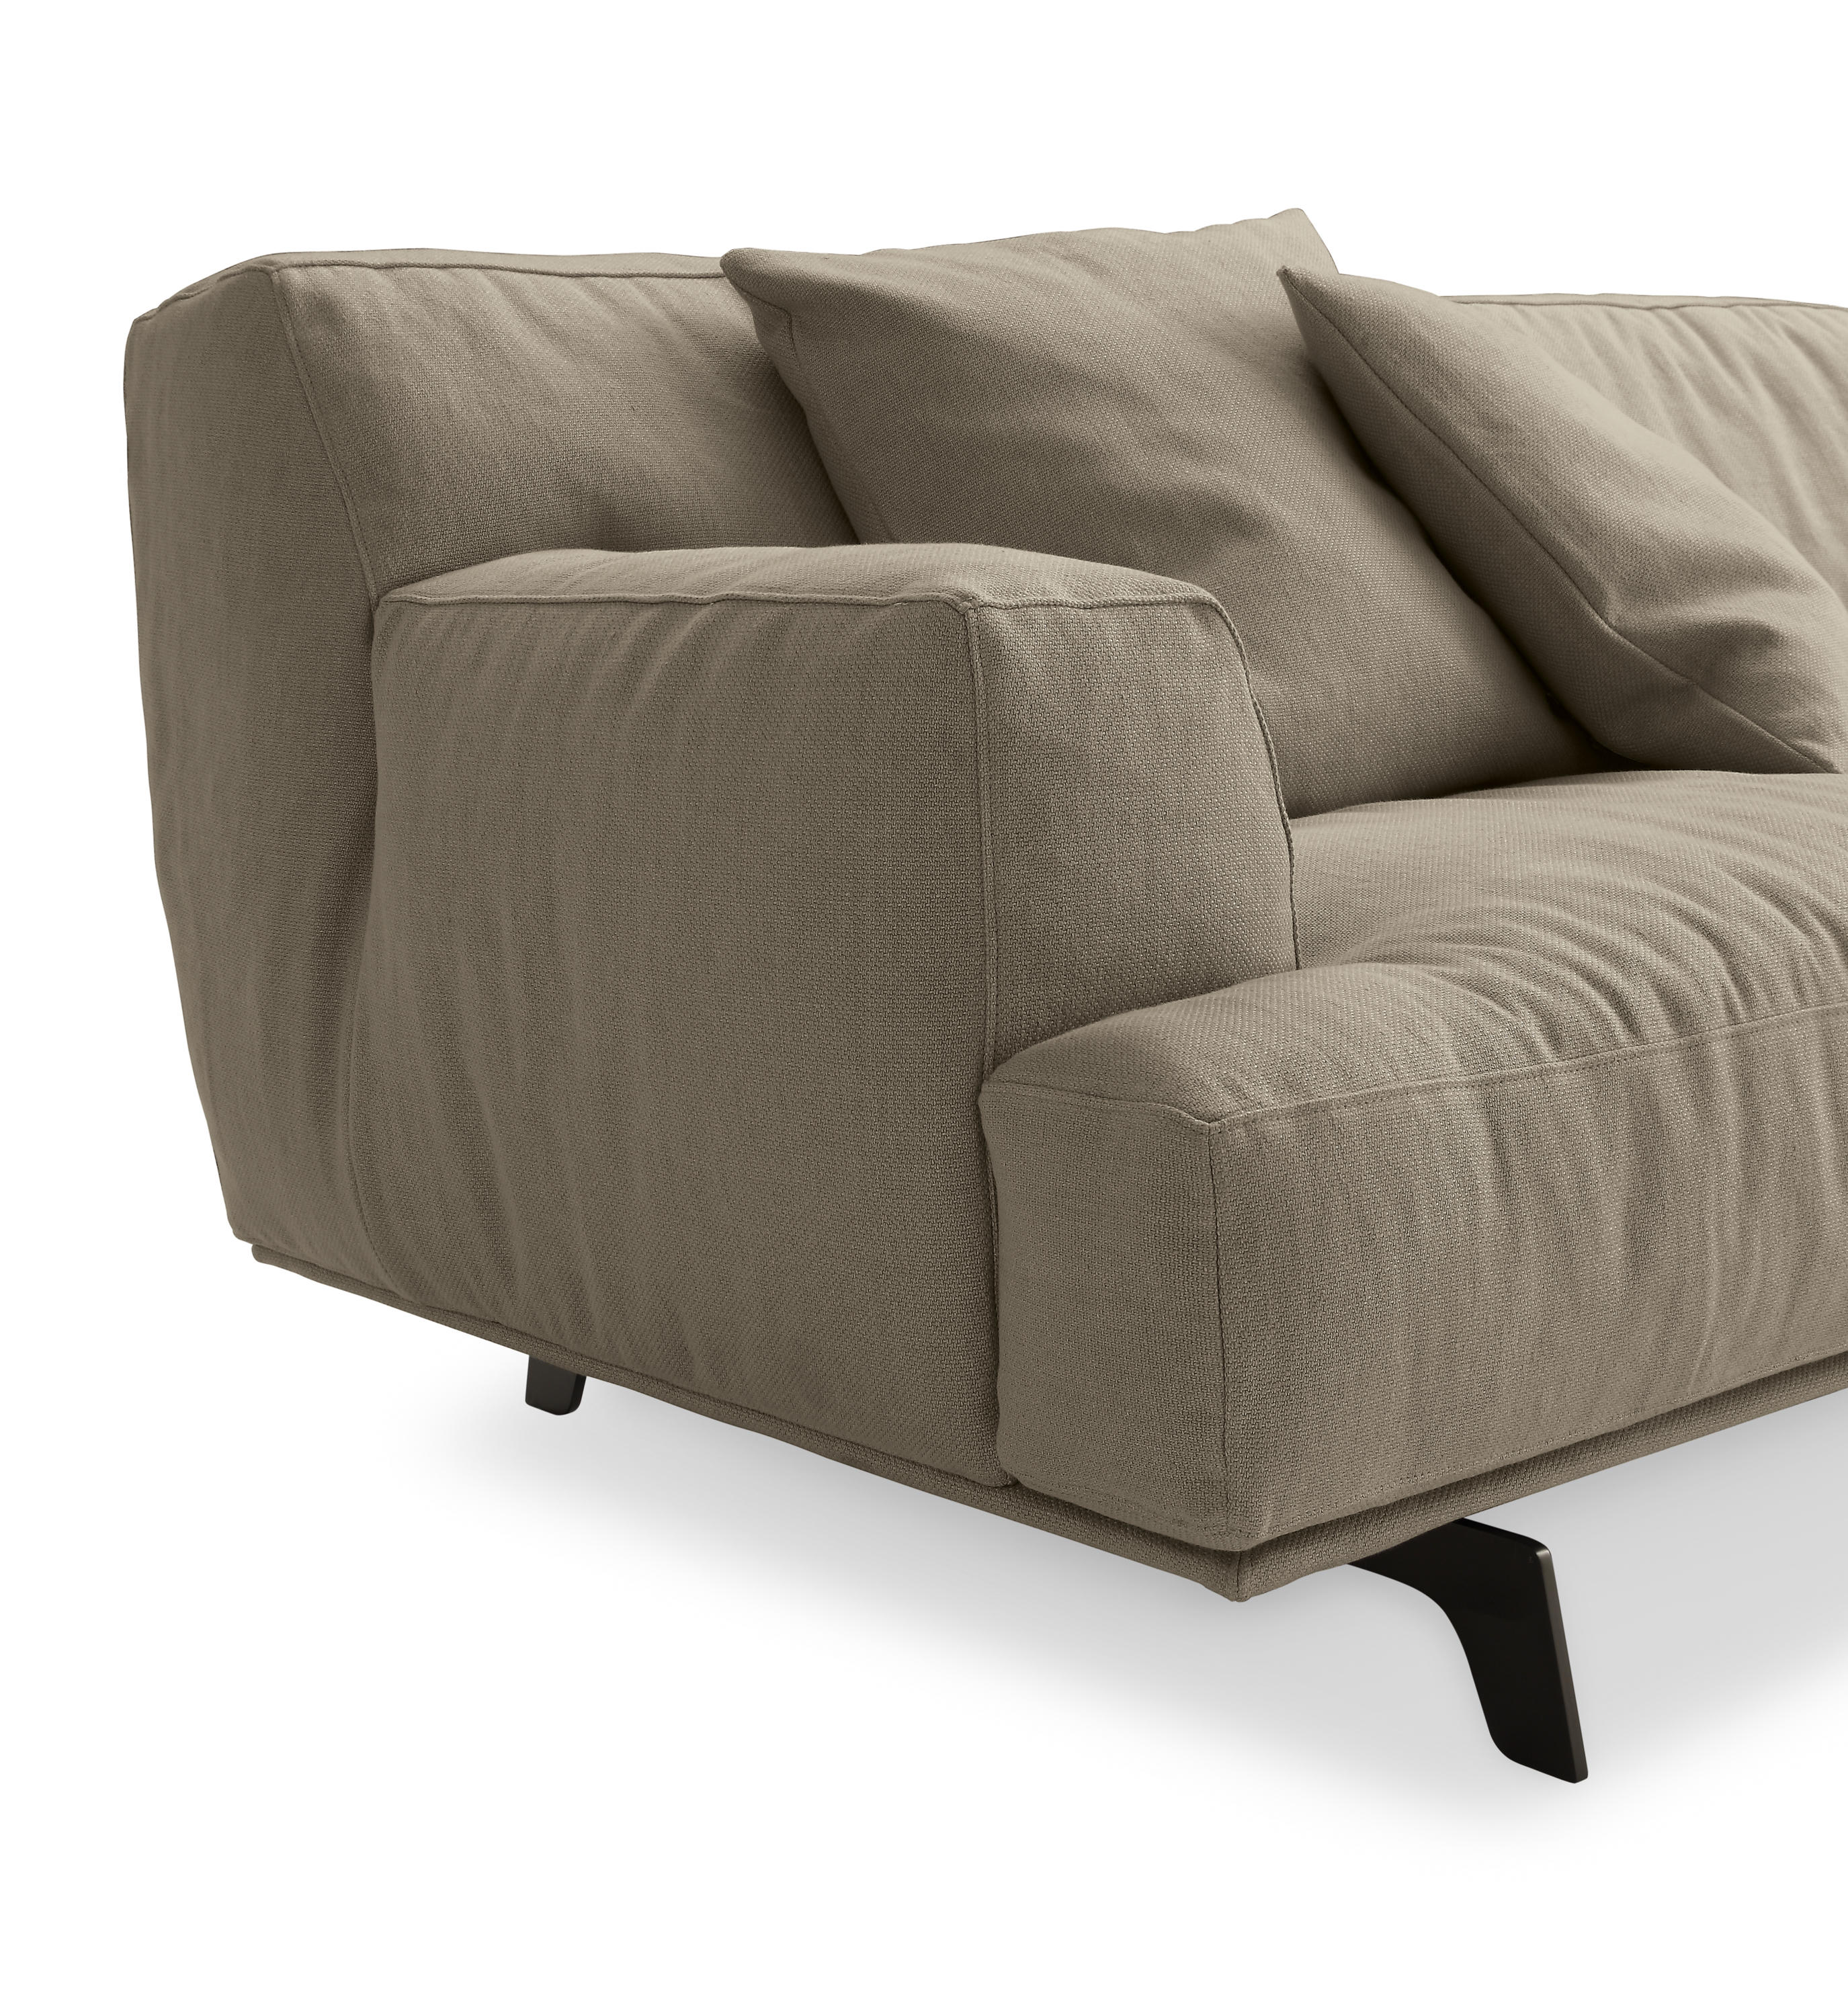 Tribeca Sofa By Poliform Sofas